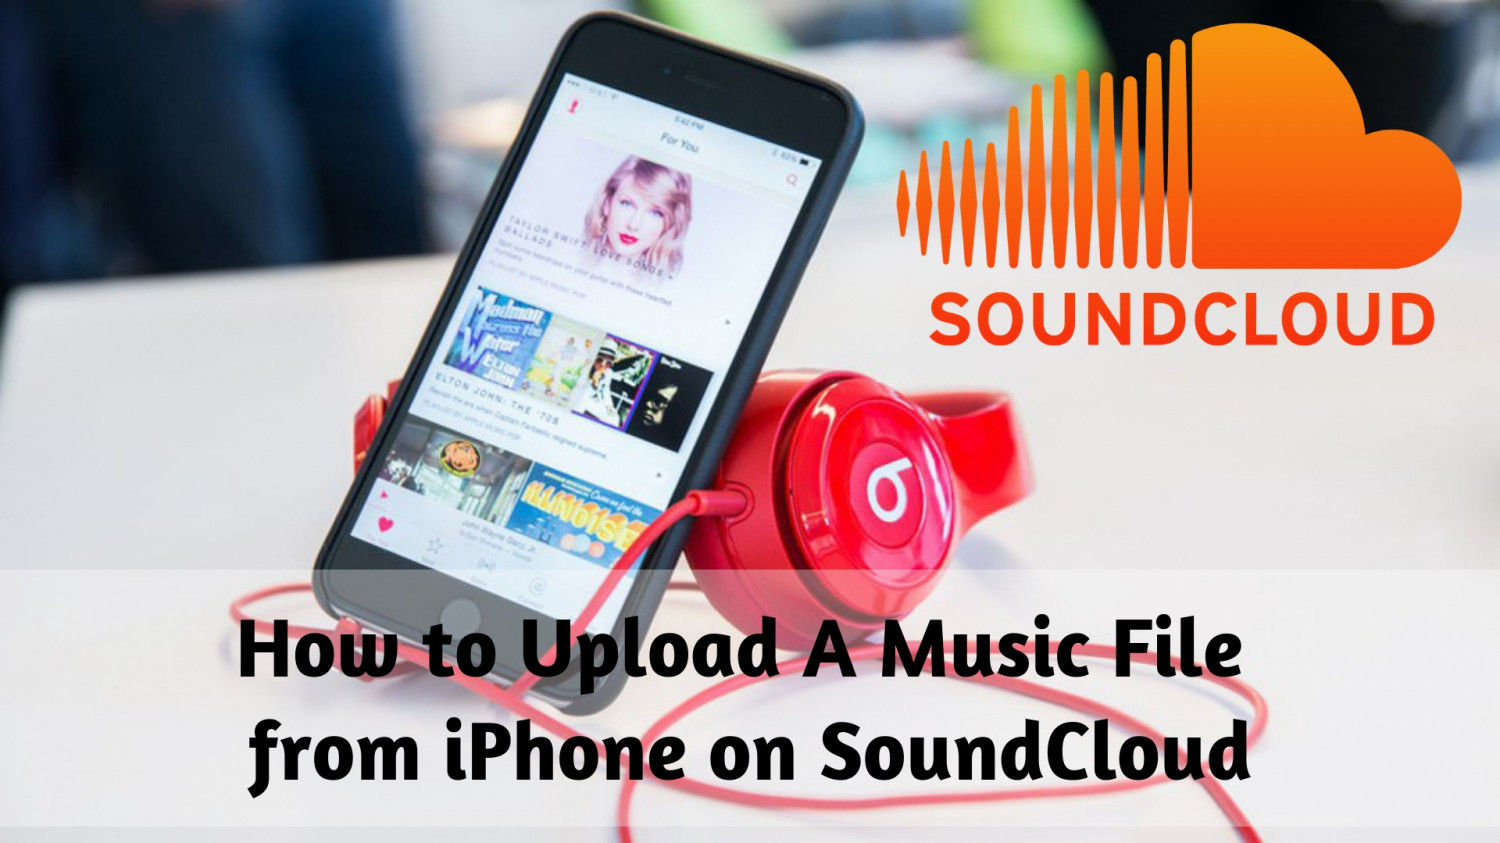 How To Upload Music From iPhone On Soundcloud  Infographic